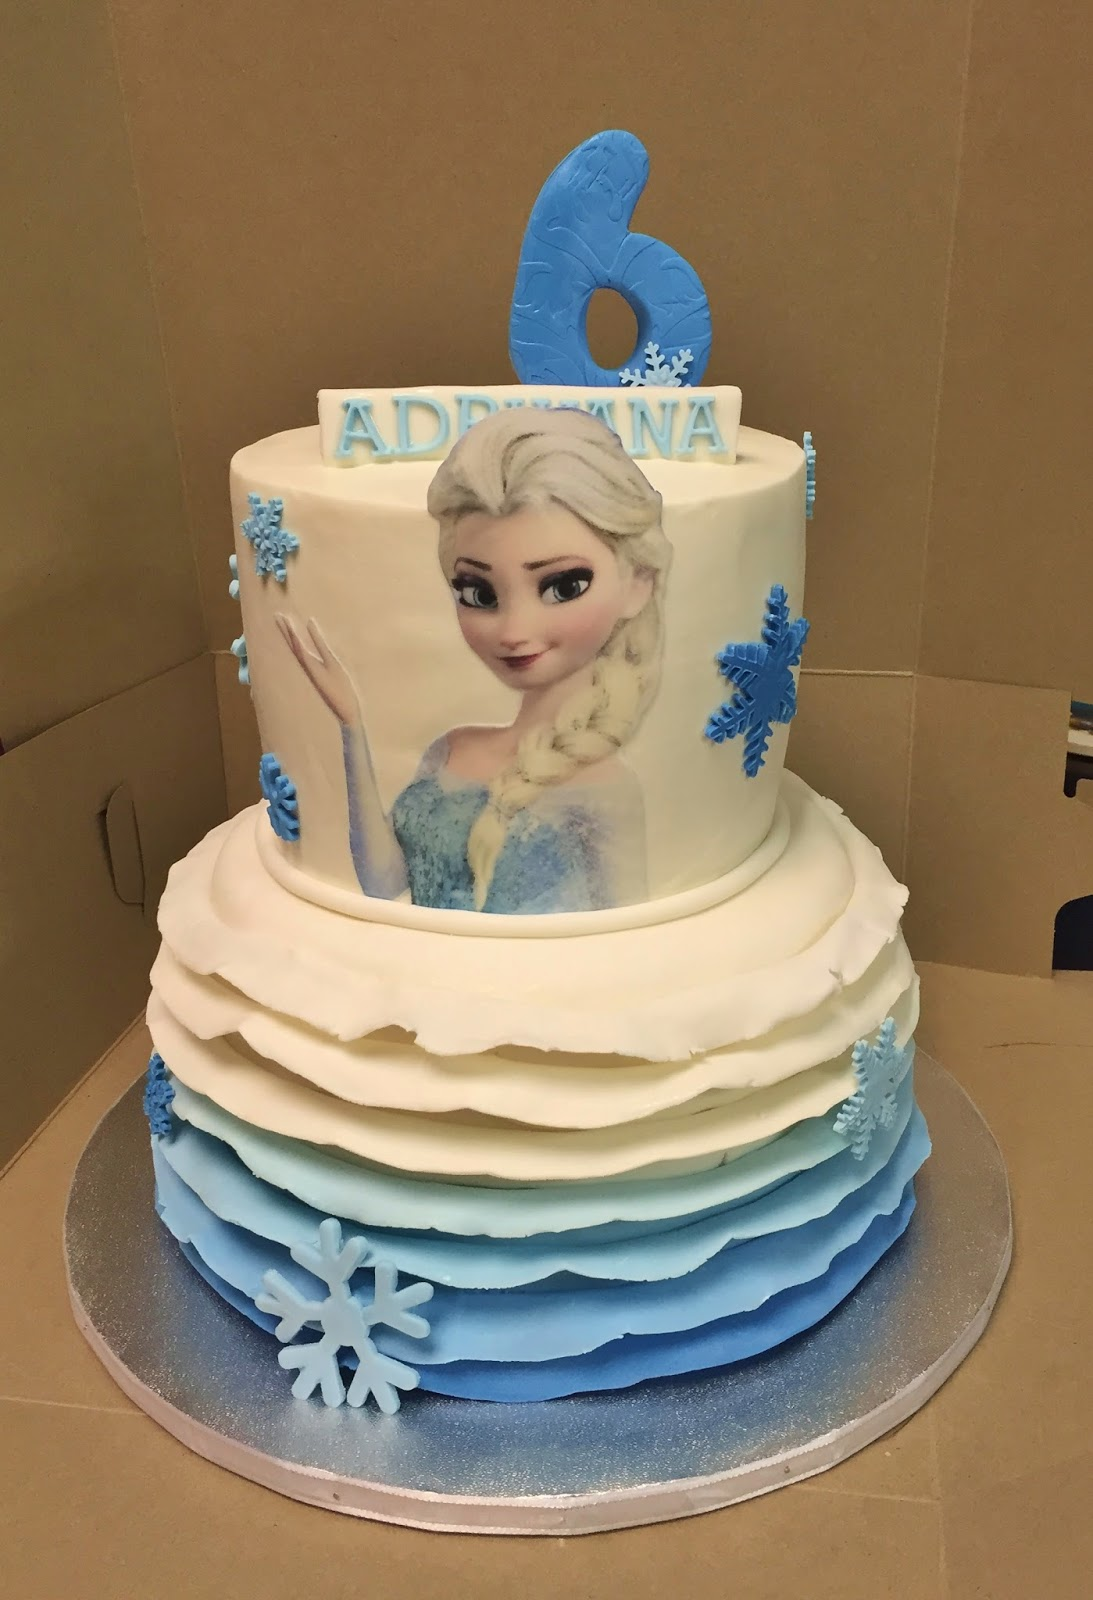 Cakes By Mindy Frozen Themed Ruffle Cake 6 Quot Amp 8 Quot